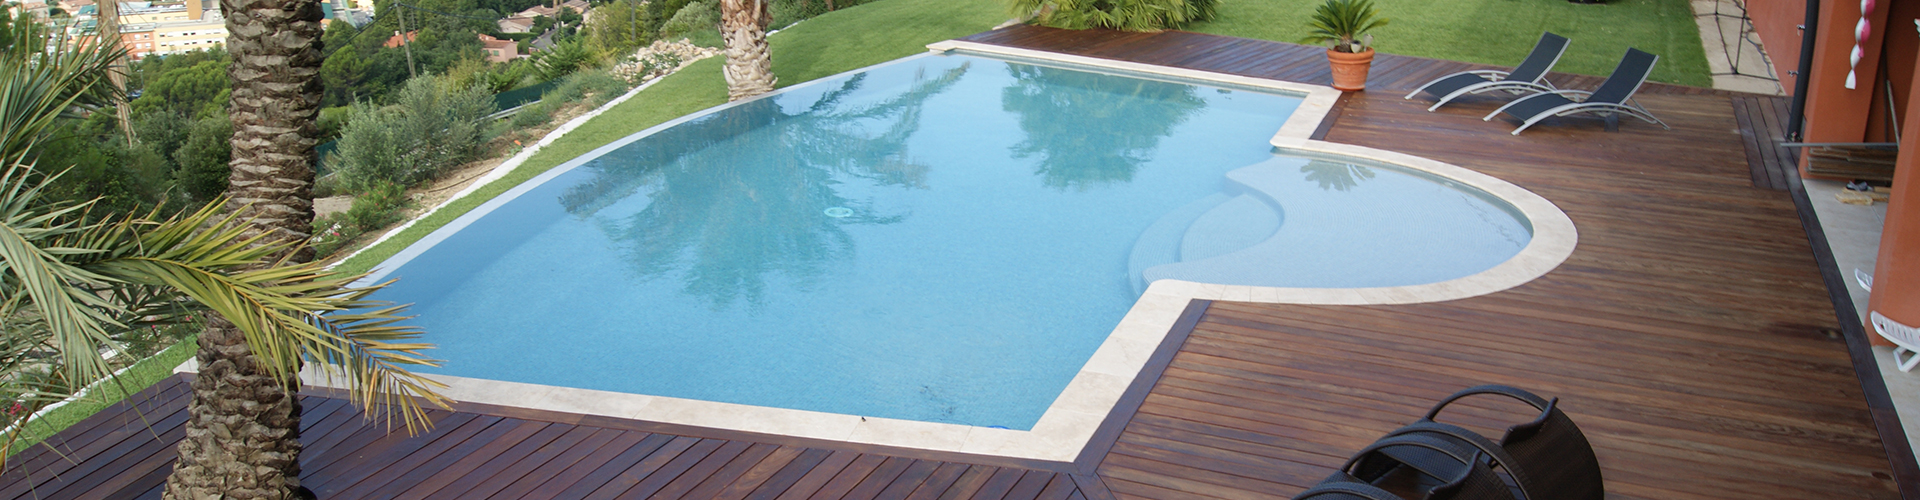 Piscine d bordement sur mesure centerspas for Piscine miroir fond mobile